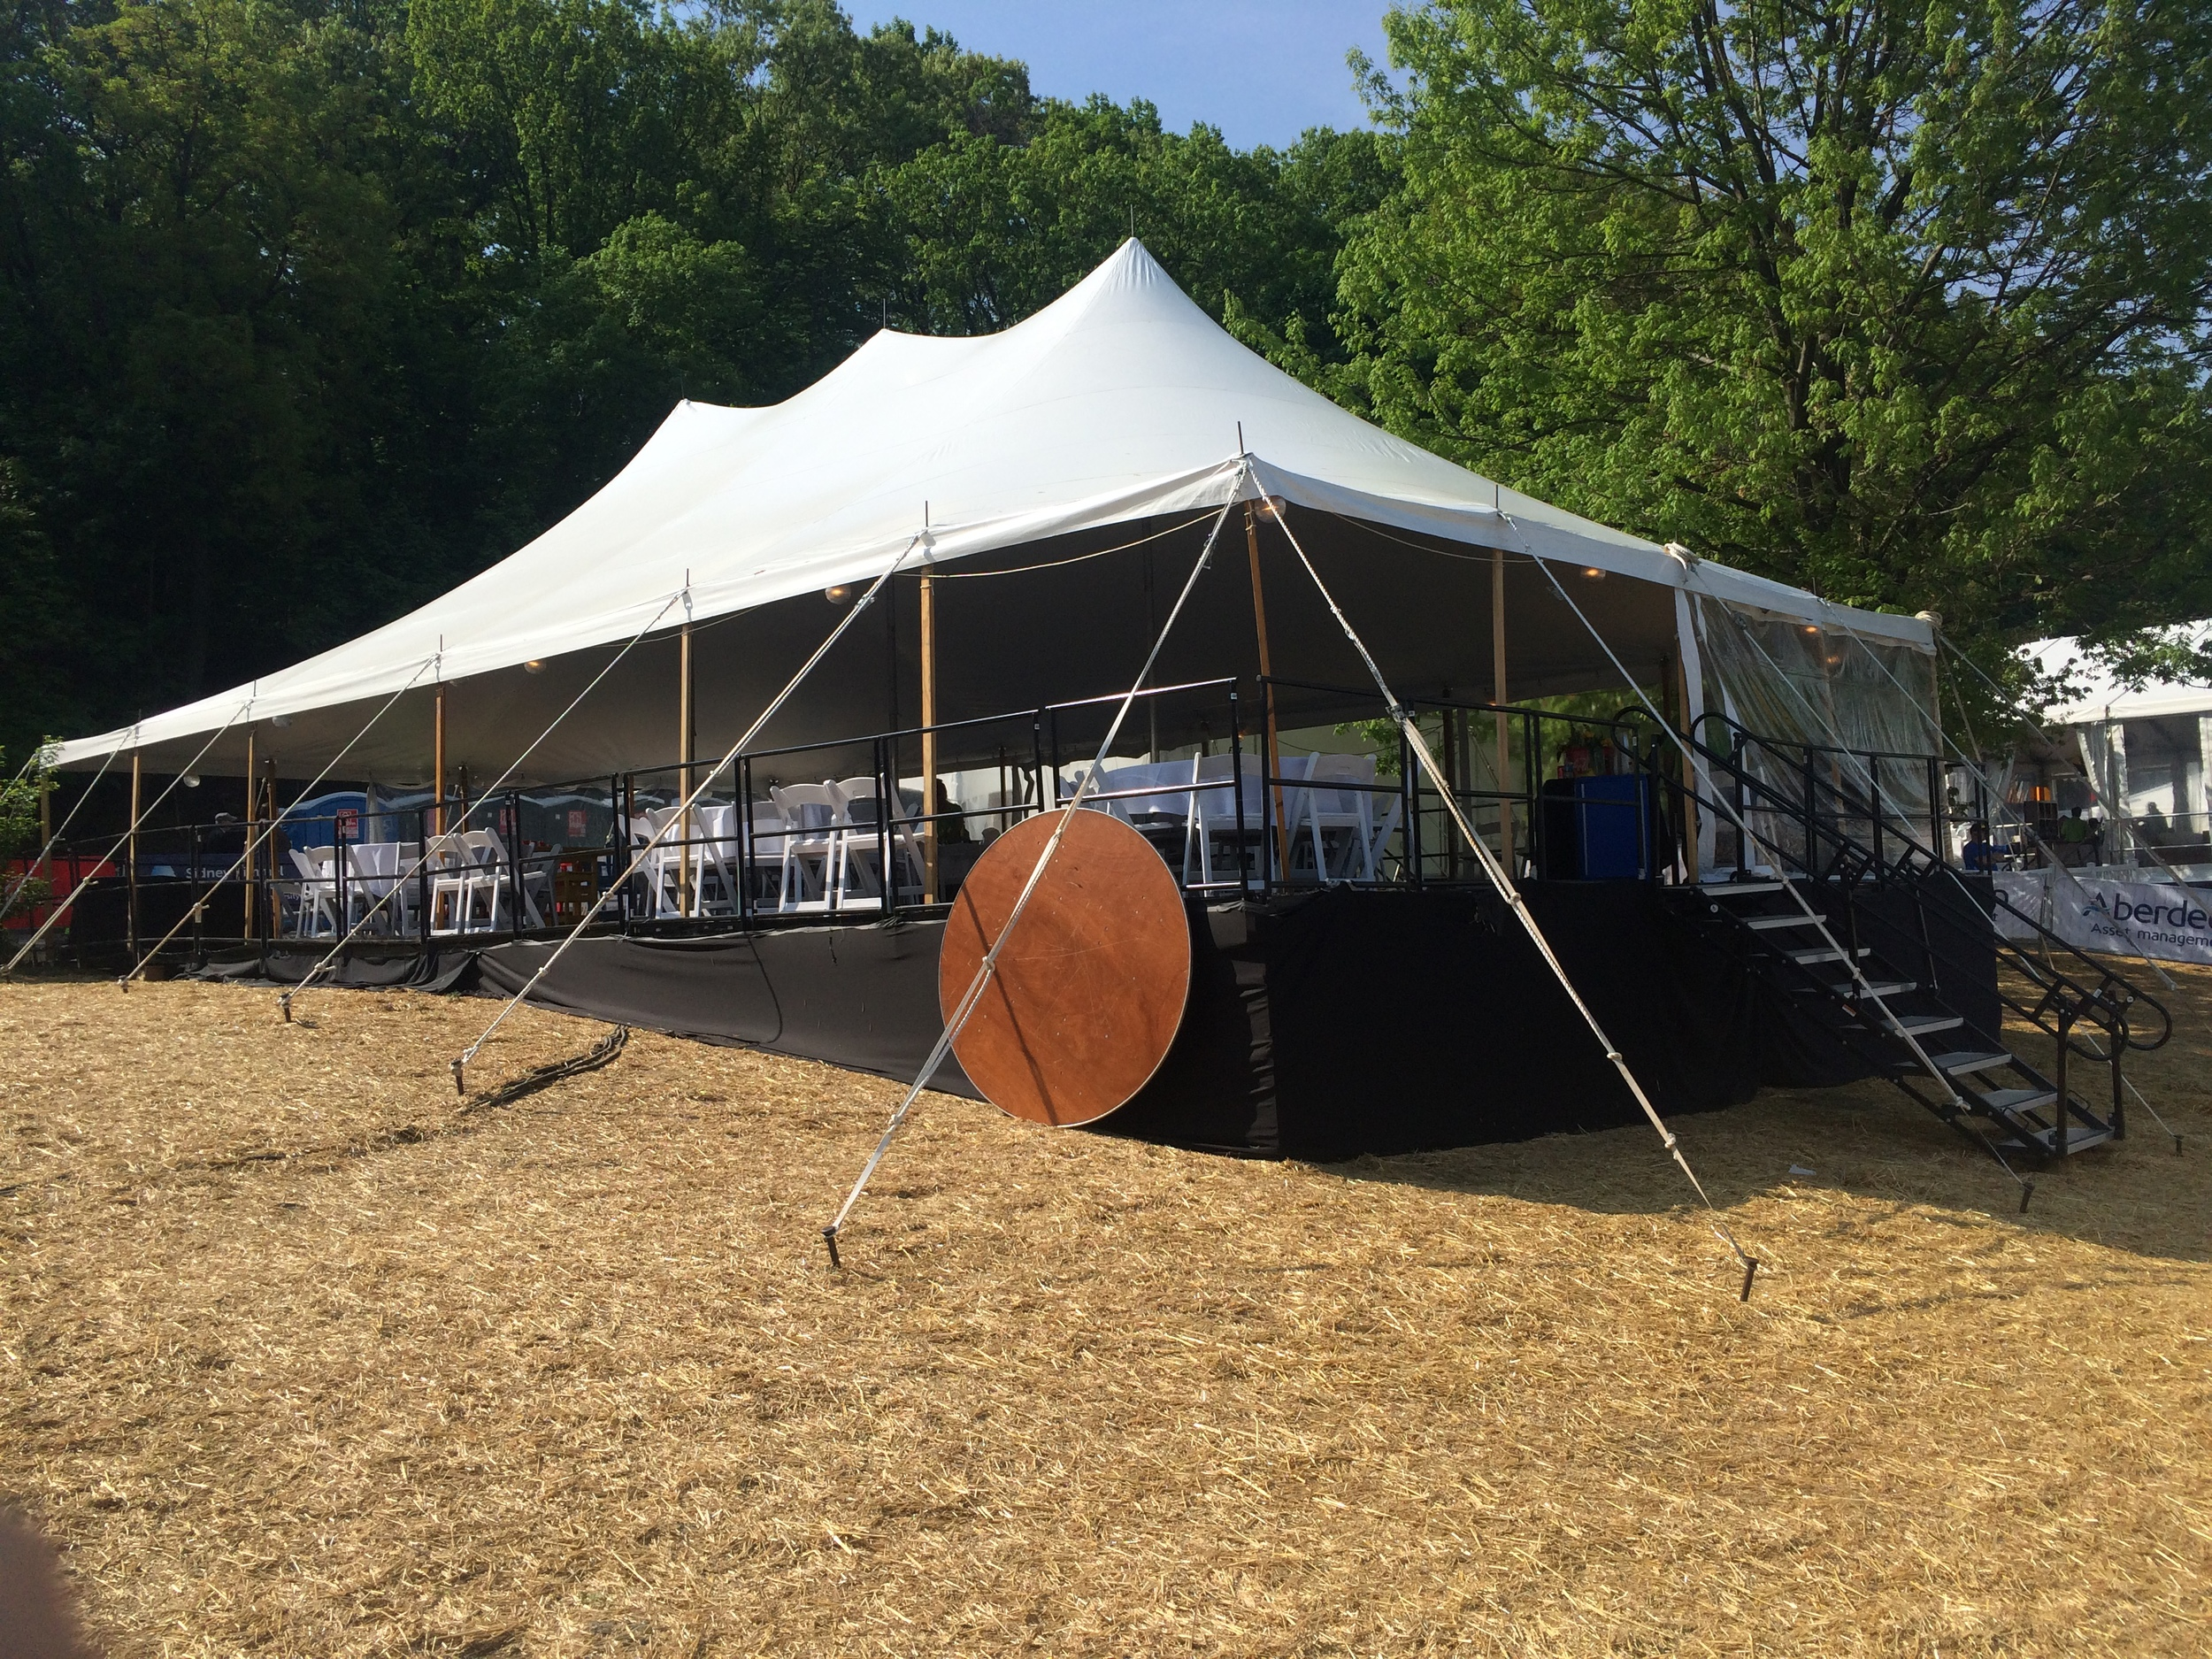 Flooring can make any area tent-ready